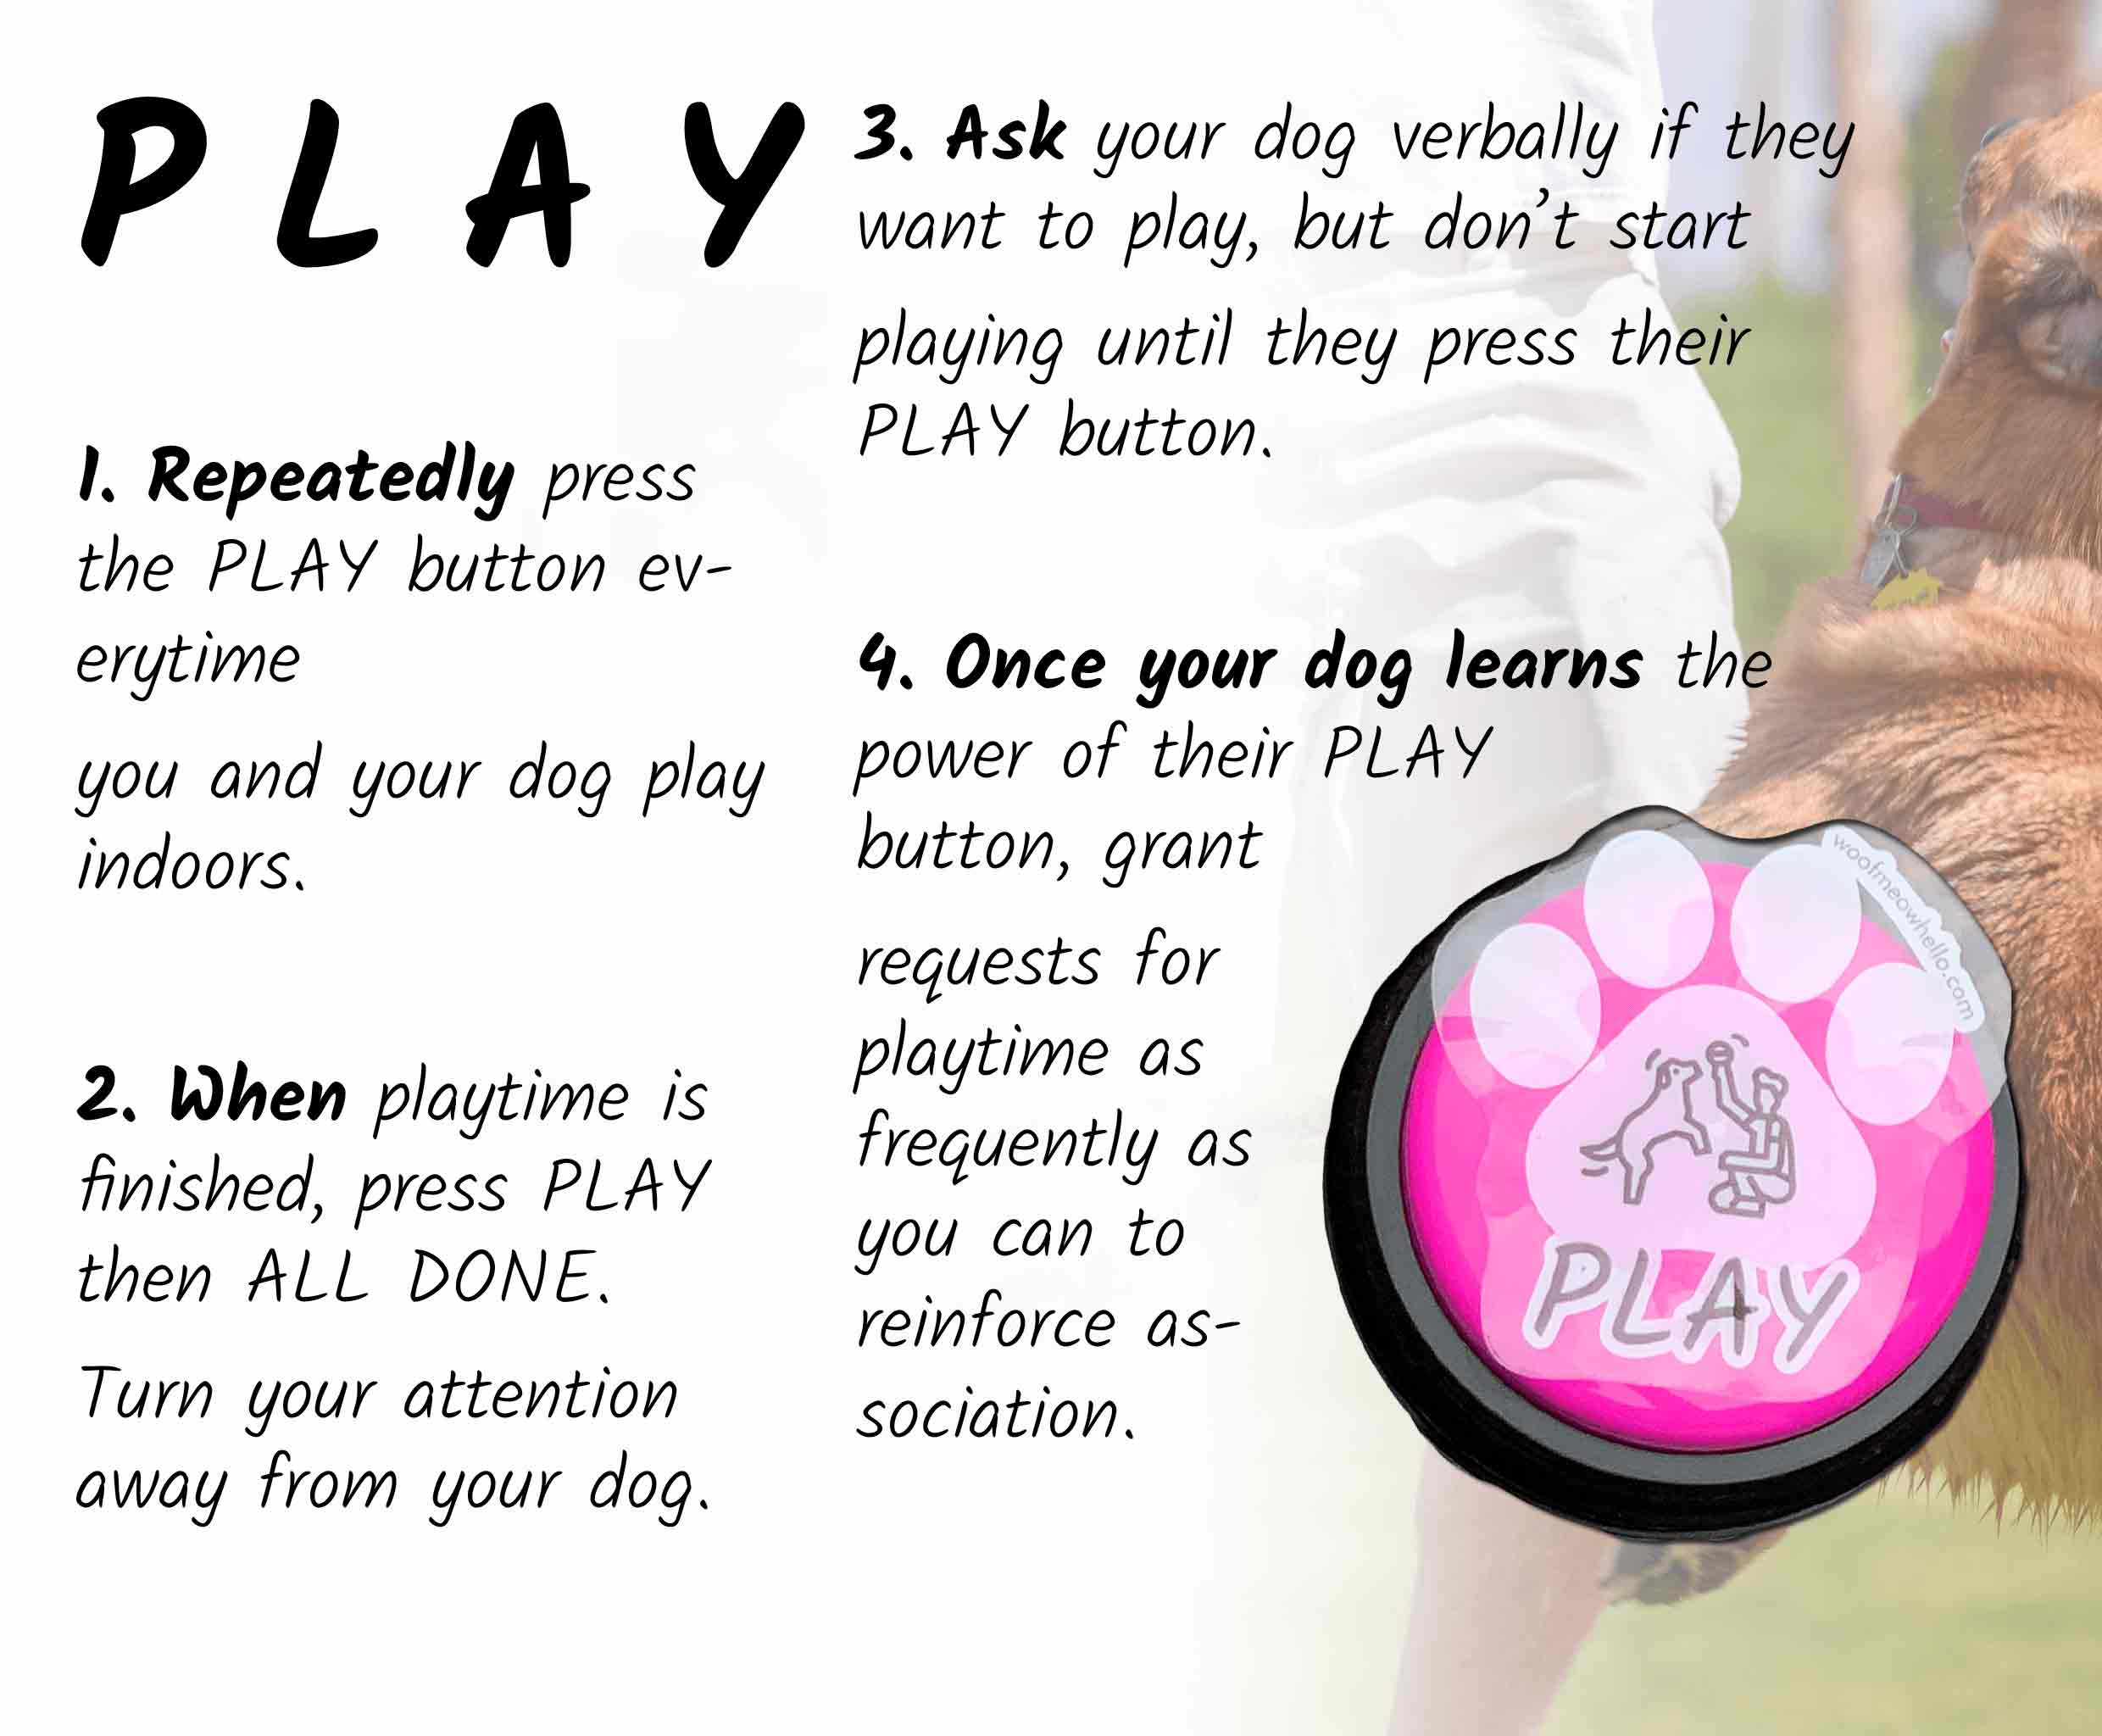 Repeatedly press the play button every time you and your dog play indoors. When playtime is finished, press PLAY then ALL DONE. Turn your attention away from your dog. Ask your dog verbally if they want to play, but don't start playing until they press their PLAY button. Once your dog learns the power of their PLAY button, grant requests for playtime as frequently as you can to reinforce association.